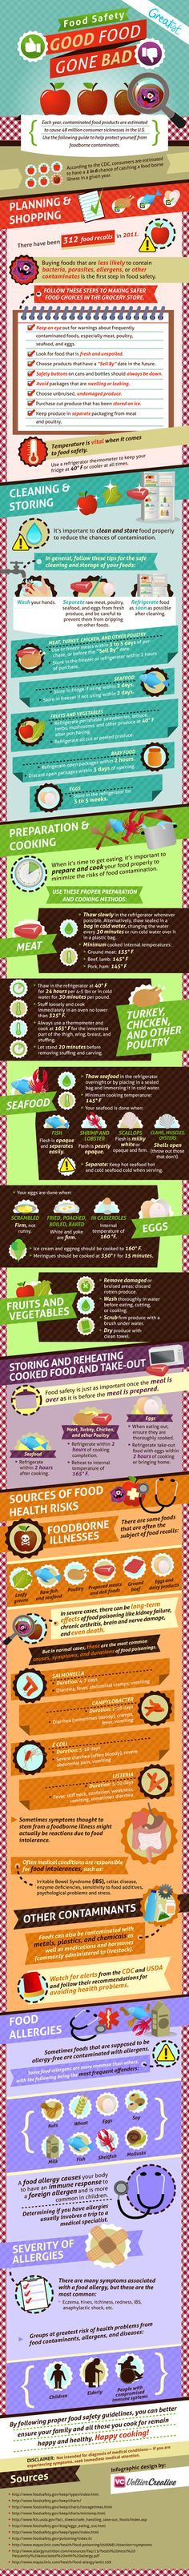 This food safety infographic communicates important food safety information and food safety tips to keep good food from going bad. Avocado Smoothie, Tips And Tricks, Food Safety, Safety Tips, Mental Training, Safety Training, Food Science, Life Science, Food Facts